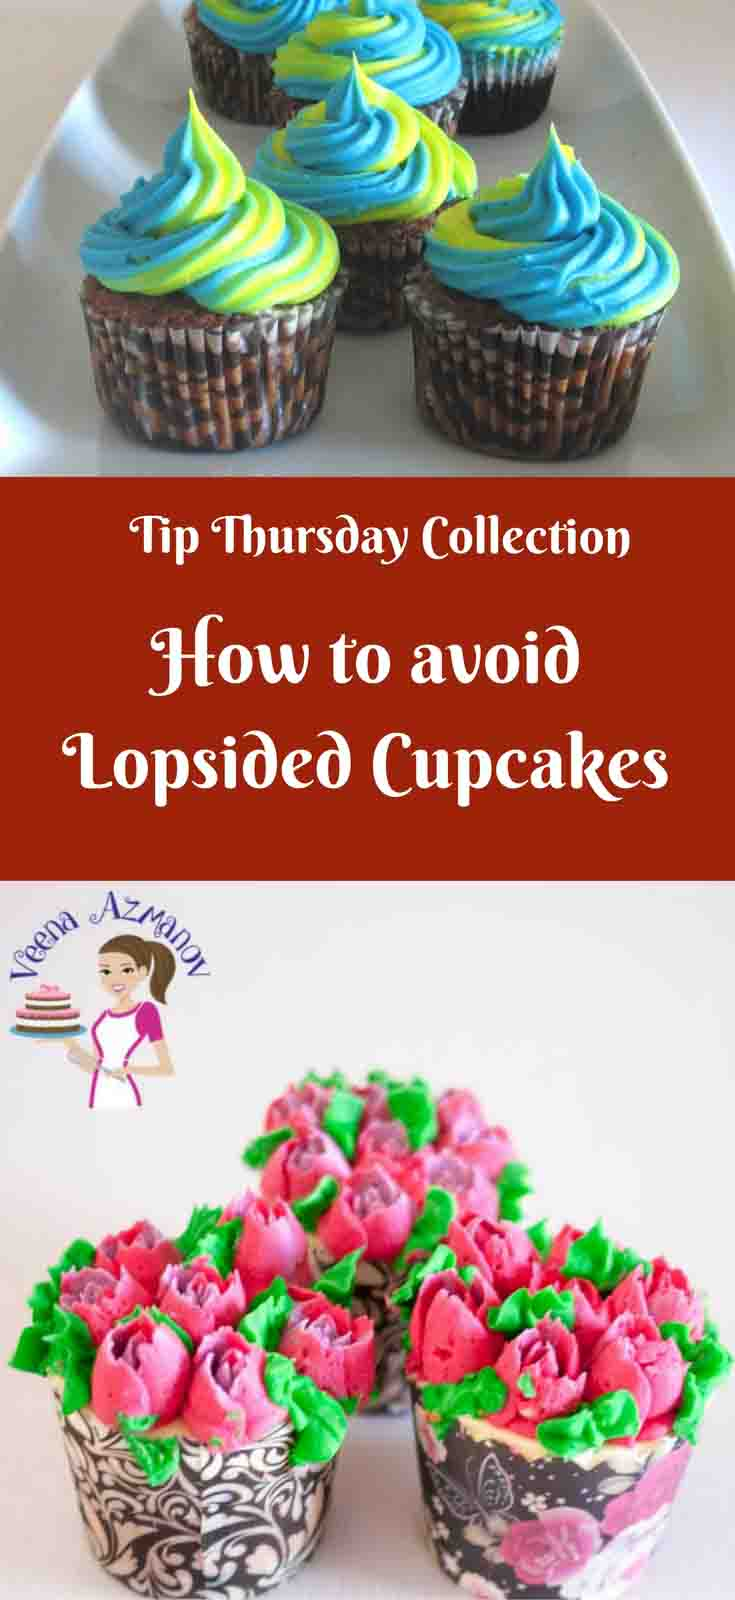 One of the problems with cupcake baking can be lopsided, wonky, uneven baked cupcakes which can be very frustrating. Here are some tips to help trouble shoot and figure out what could be the possible cause.